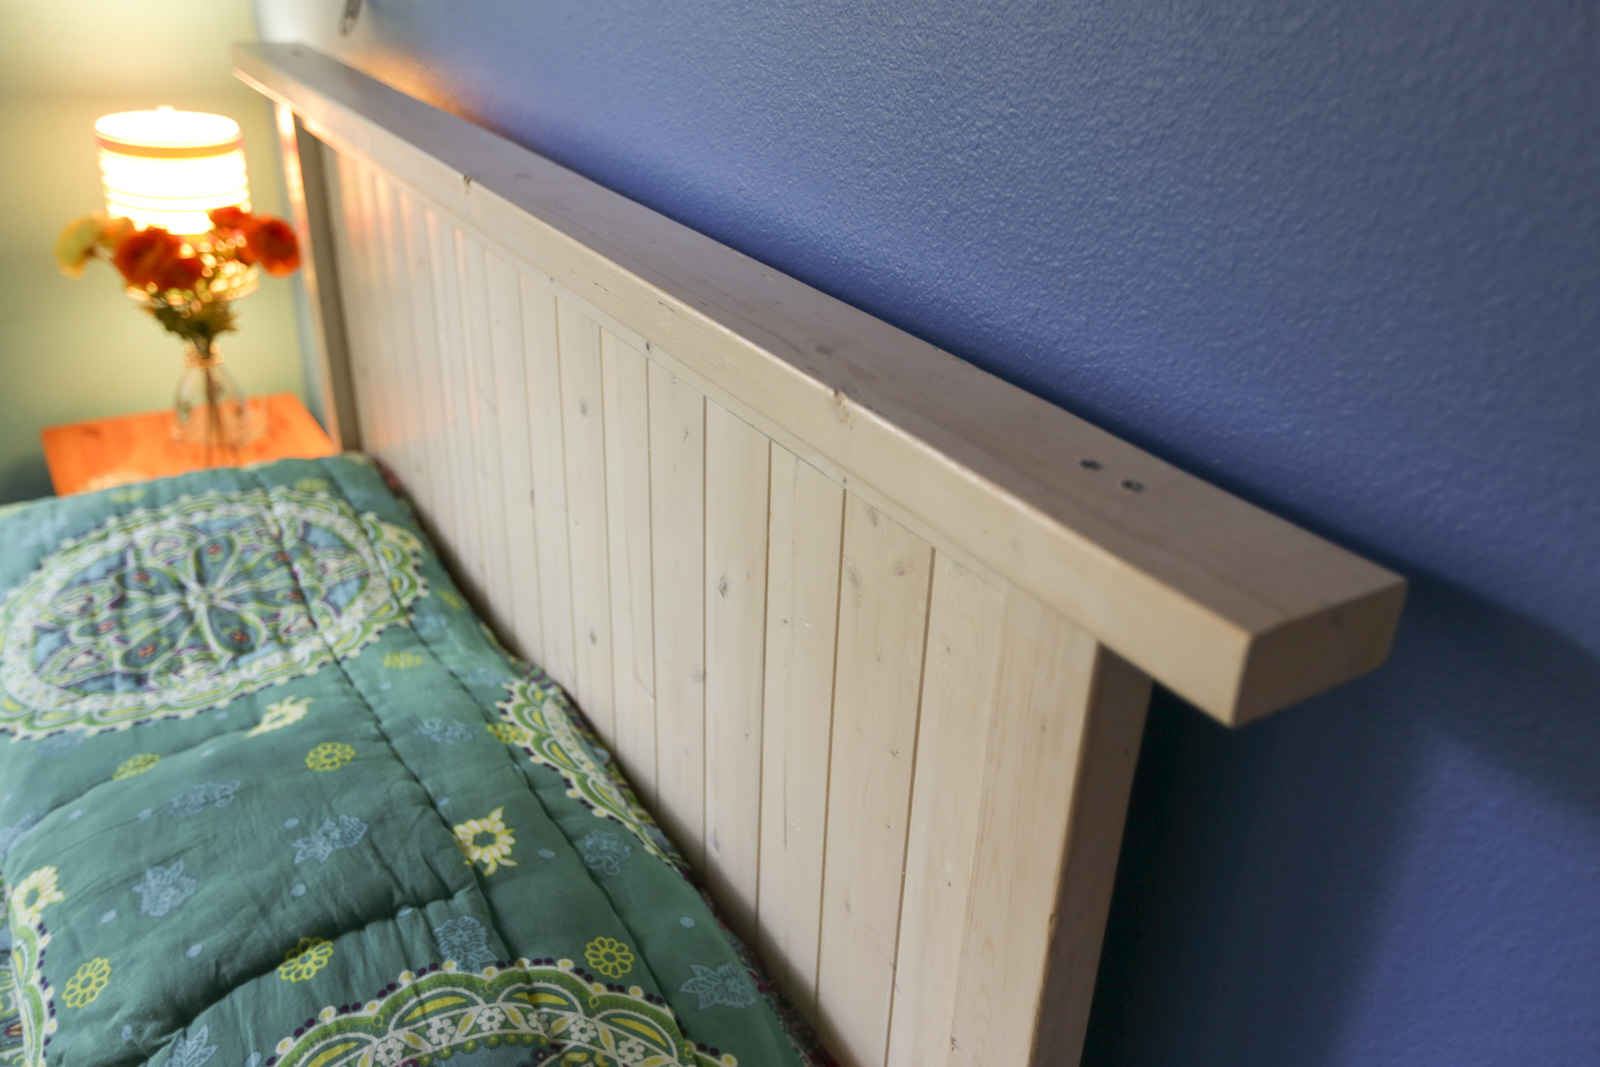 How to build a simple diy headboard diy bedroom projects - How to make a bed headboard ...